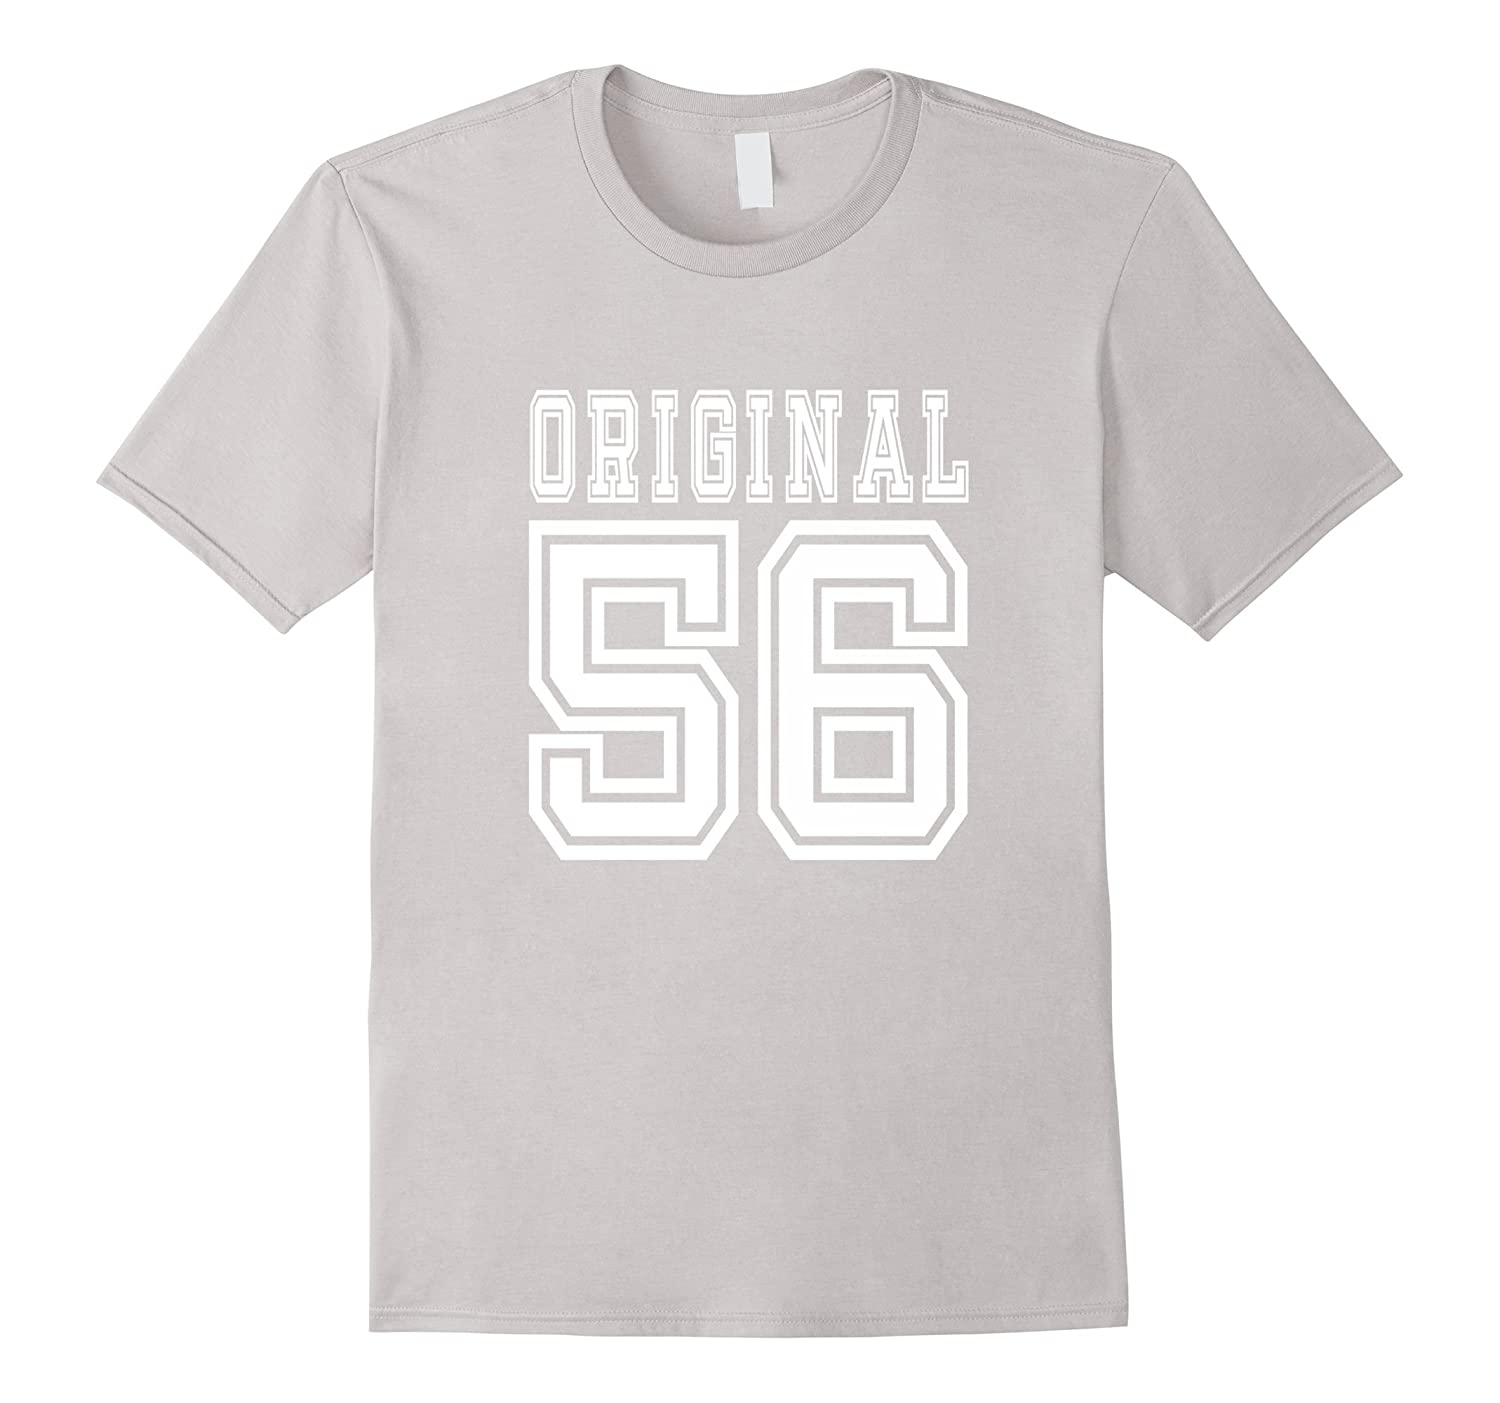 60th Birthday Gift 60 Year Old Present Idea 1956 T Shirt M CL